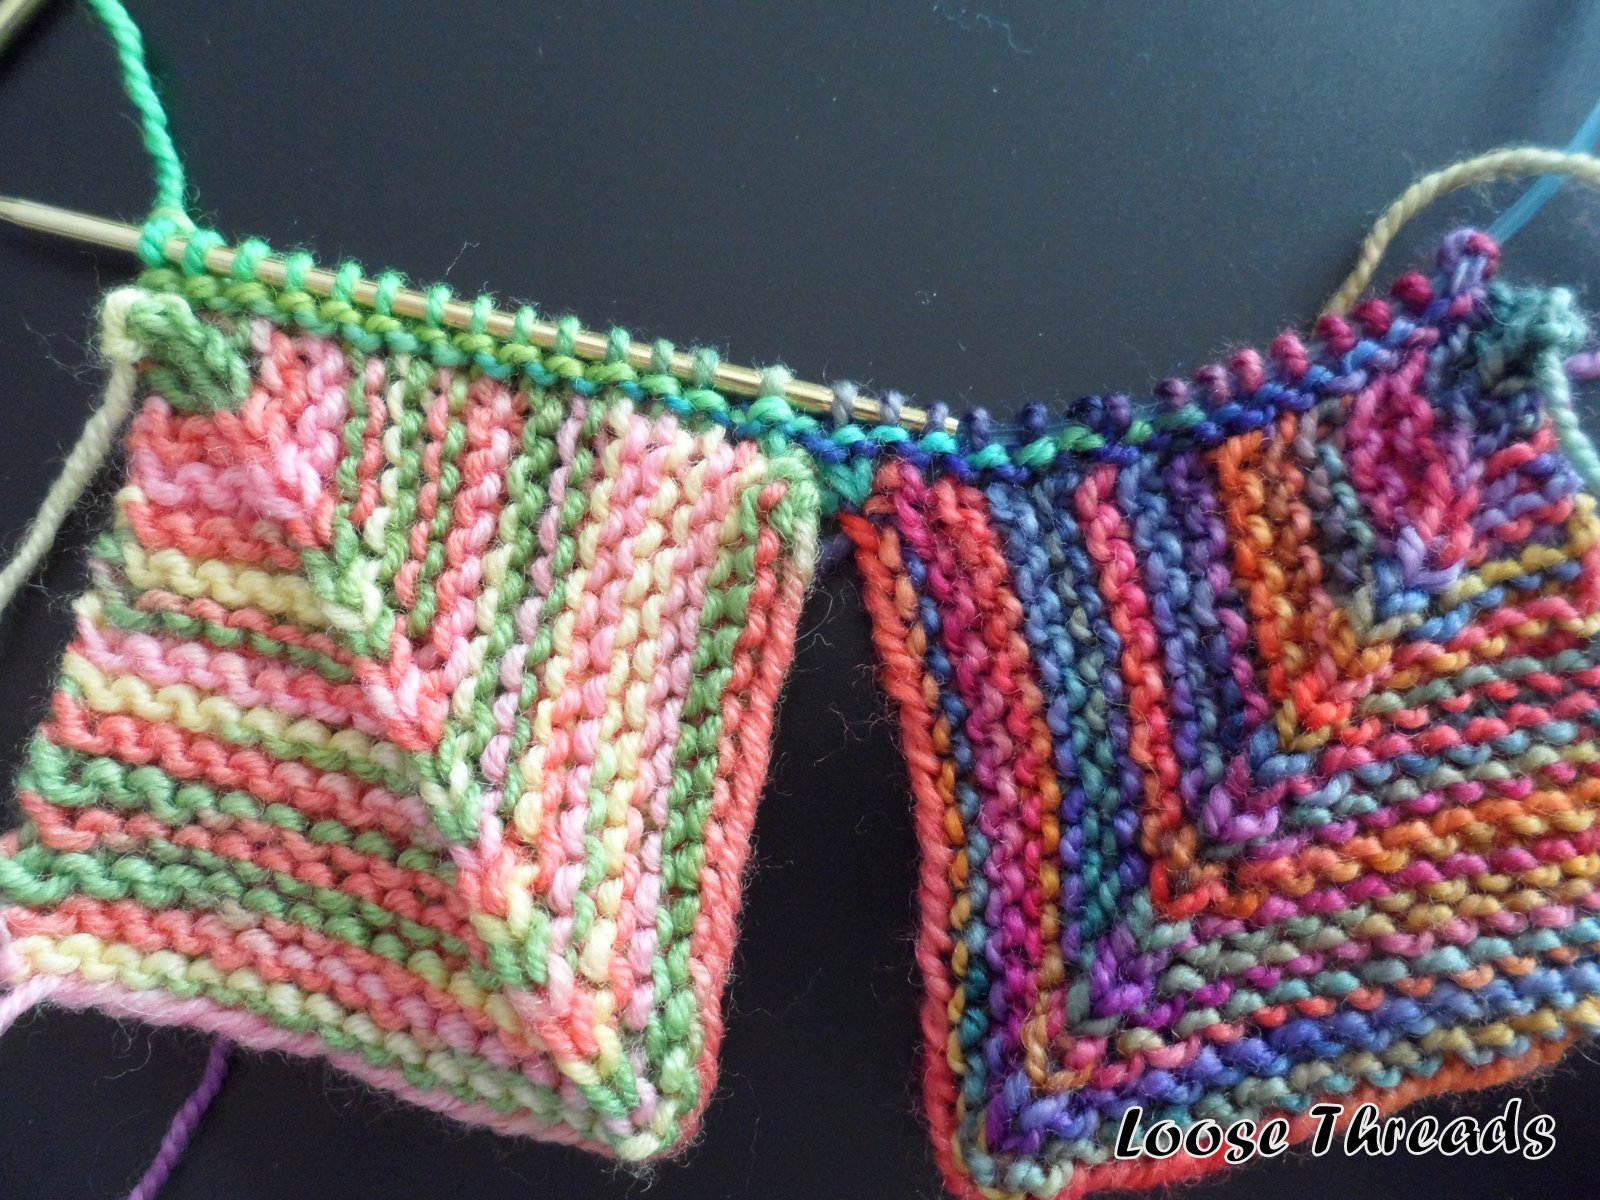 Knitting Patterns For Mitered Squares : Loose Threads: Knit Mitered Square Sock Blanket